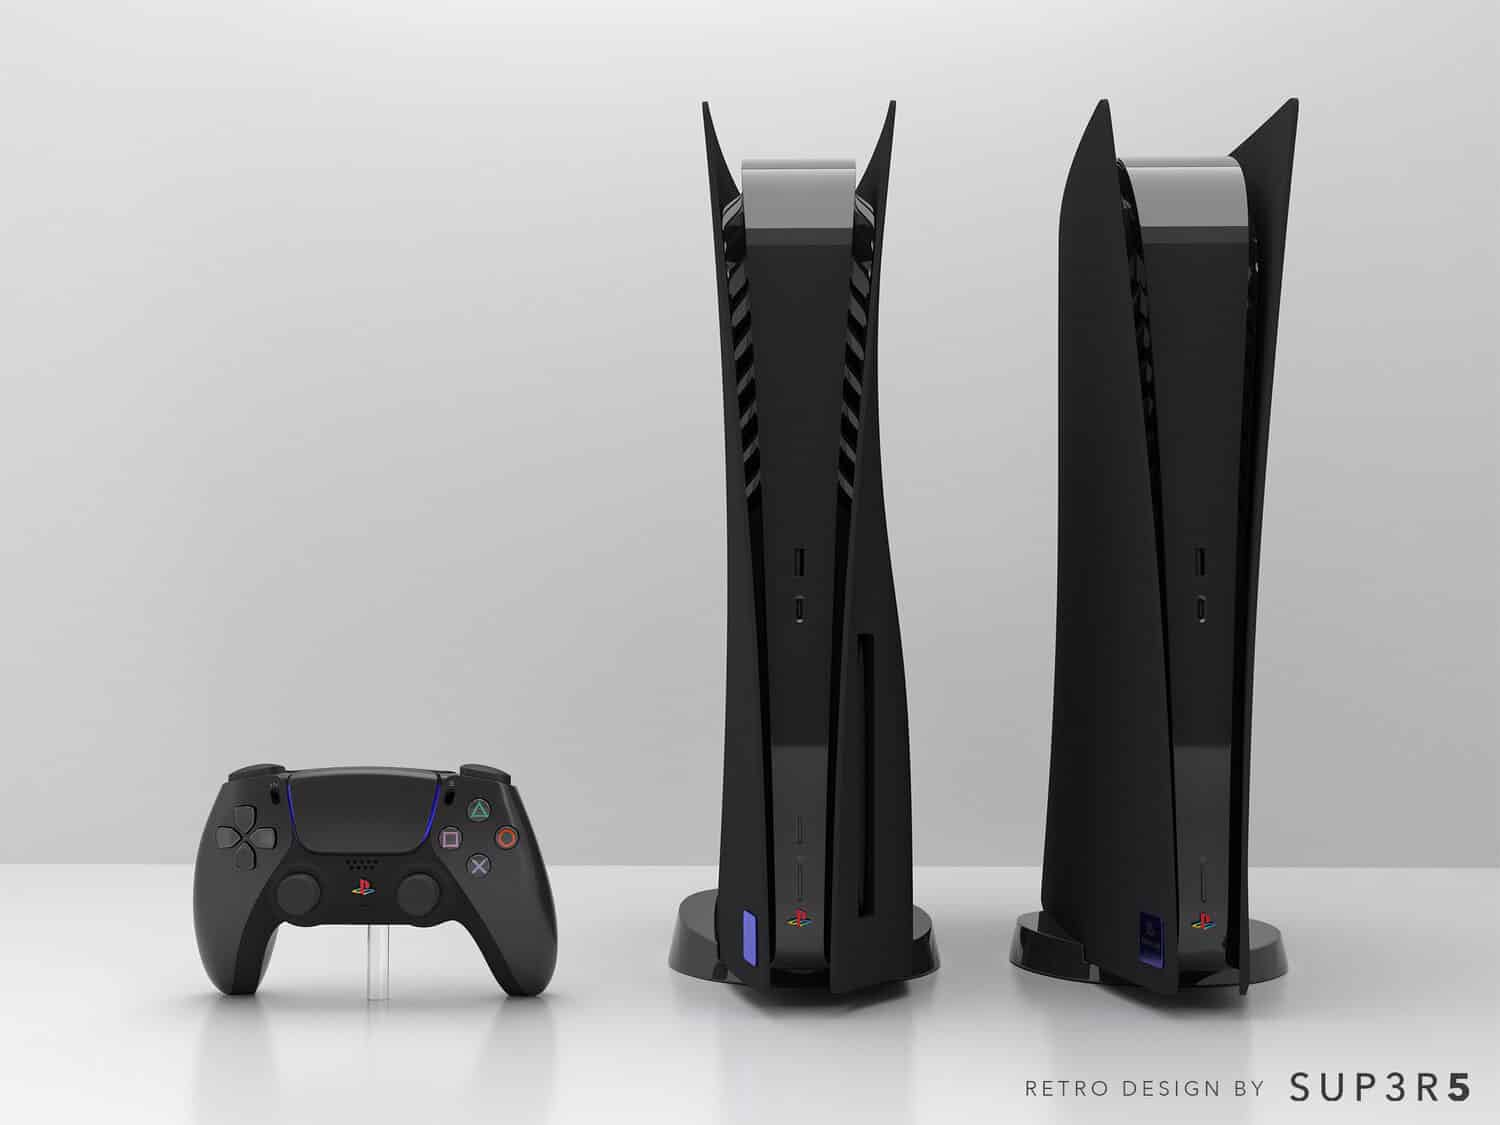 PS2-Themed Black PS5 Console